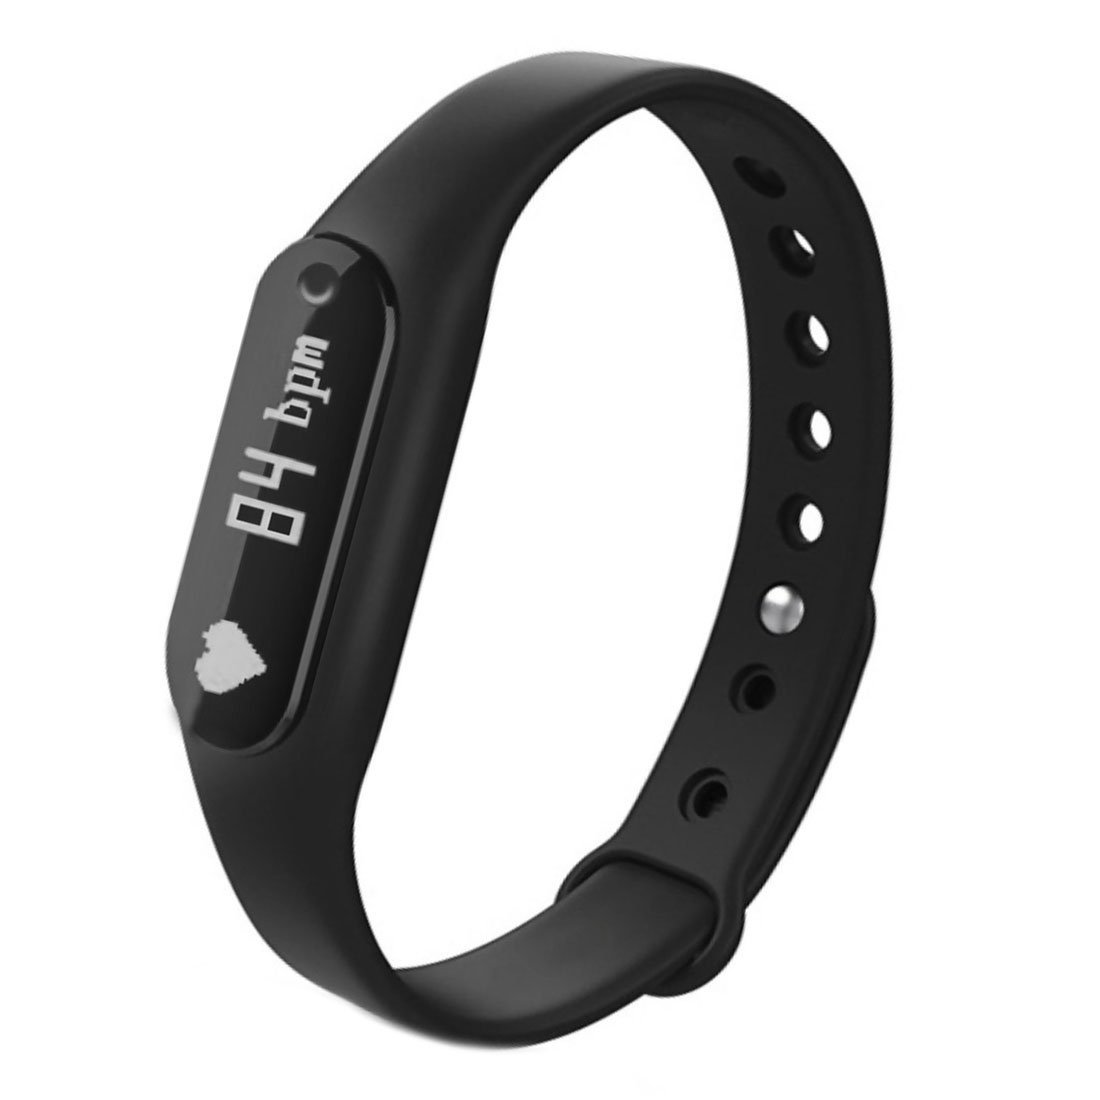 Bestseller2888 Smart Band Heart Rate Monitor/ Smartband/ Smart Wristband/ Smart Bracelet Fitness Wearable Activity Tracker/ Waterproof Bluetooth Health Fitness Band-Black